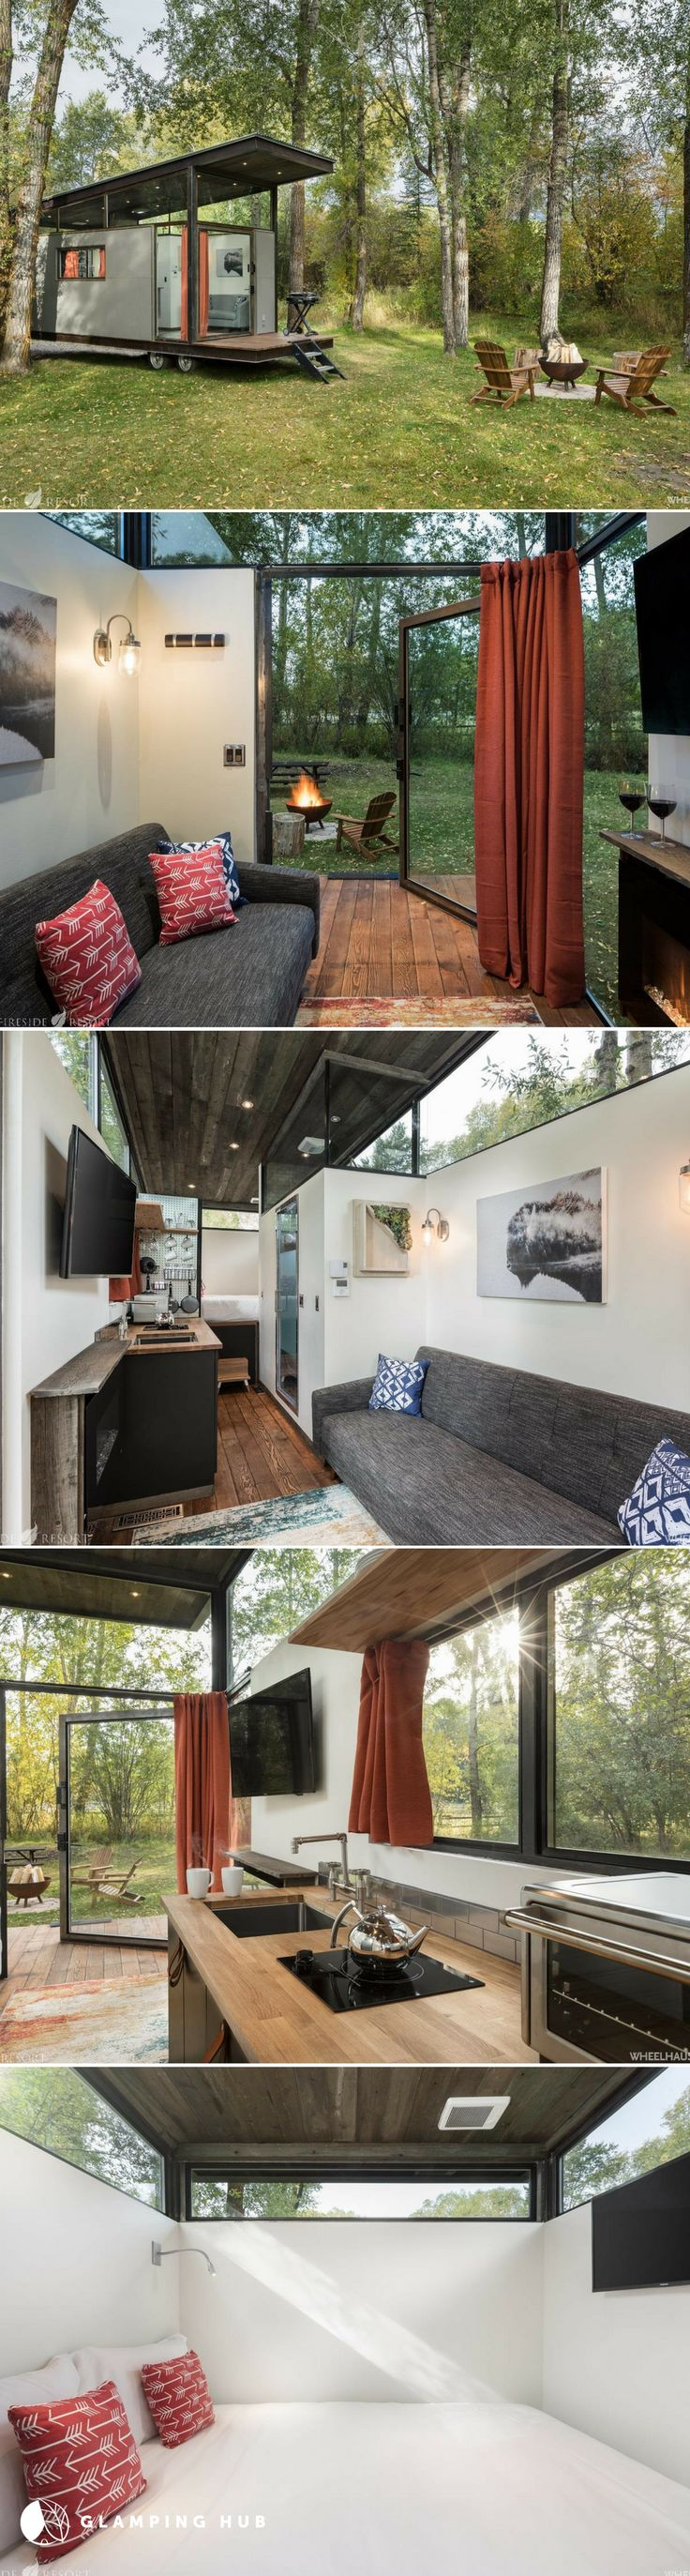 Best Tiny House Rentals Ideas On Pinterest Rental Homes Near - Couple takes tiny house big adventure